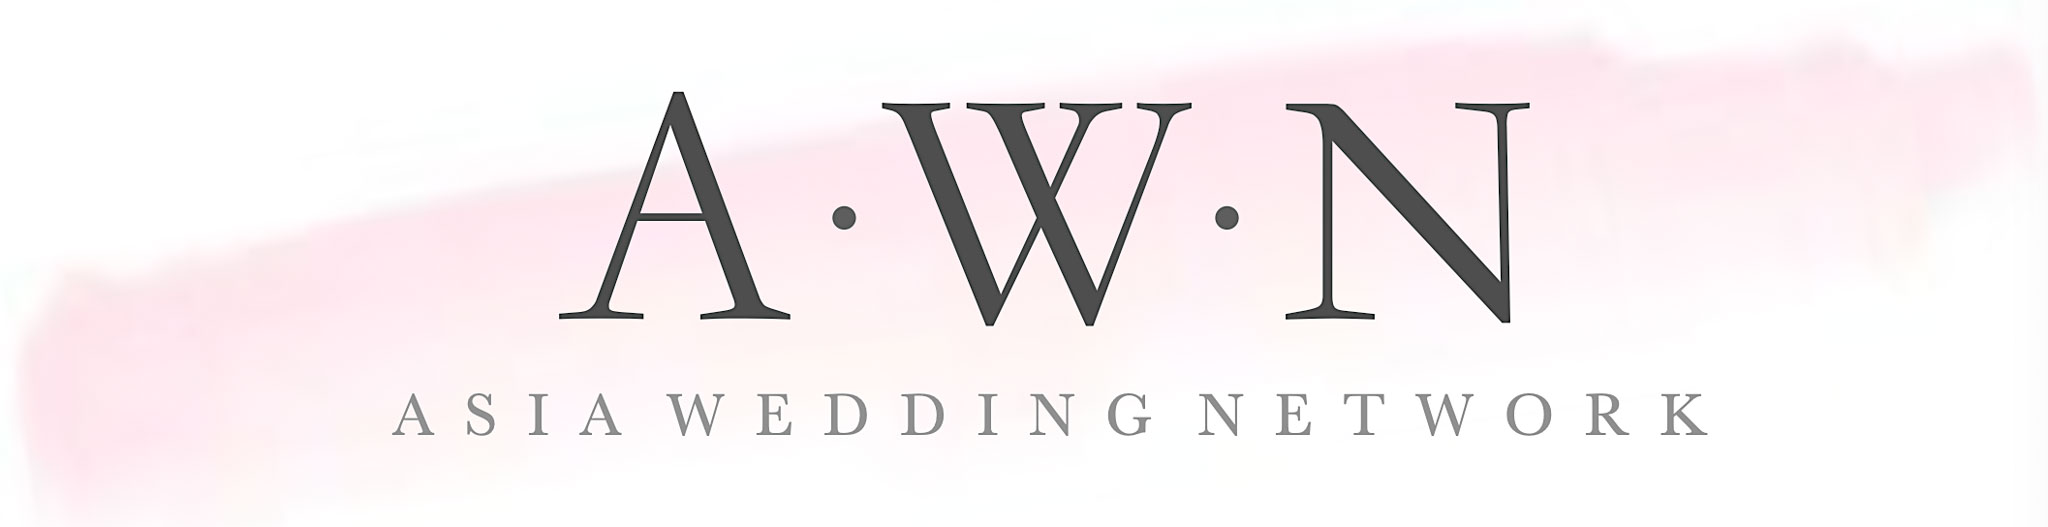 Asia Wedding Network - Asia's ultimate online wedding network